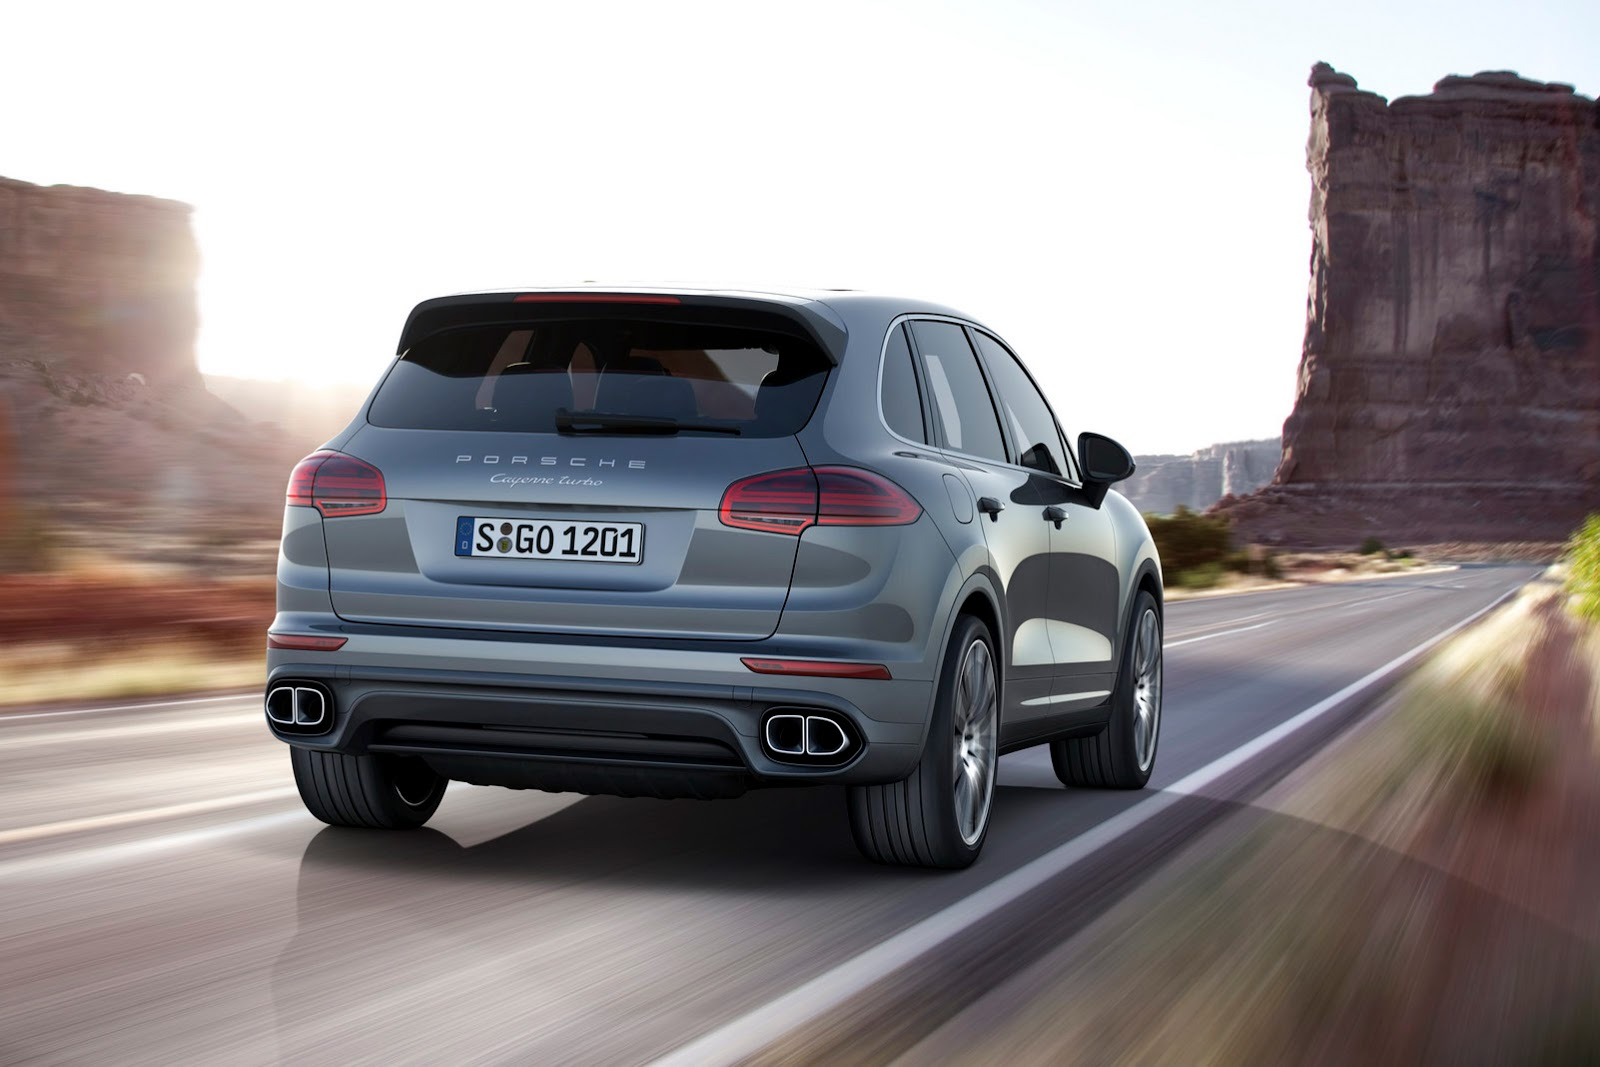 2015 porsche cayenne facelift revealed, gets 410hp plug-in hybrid